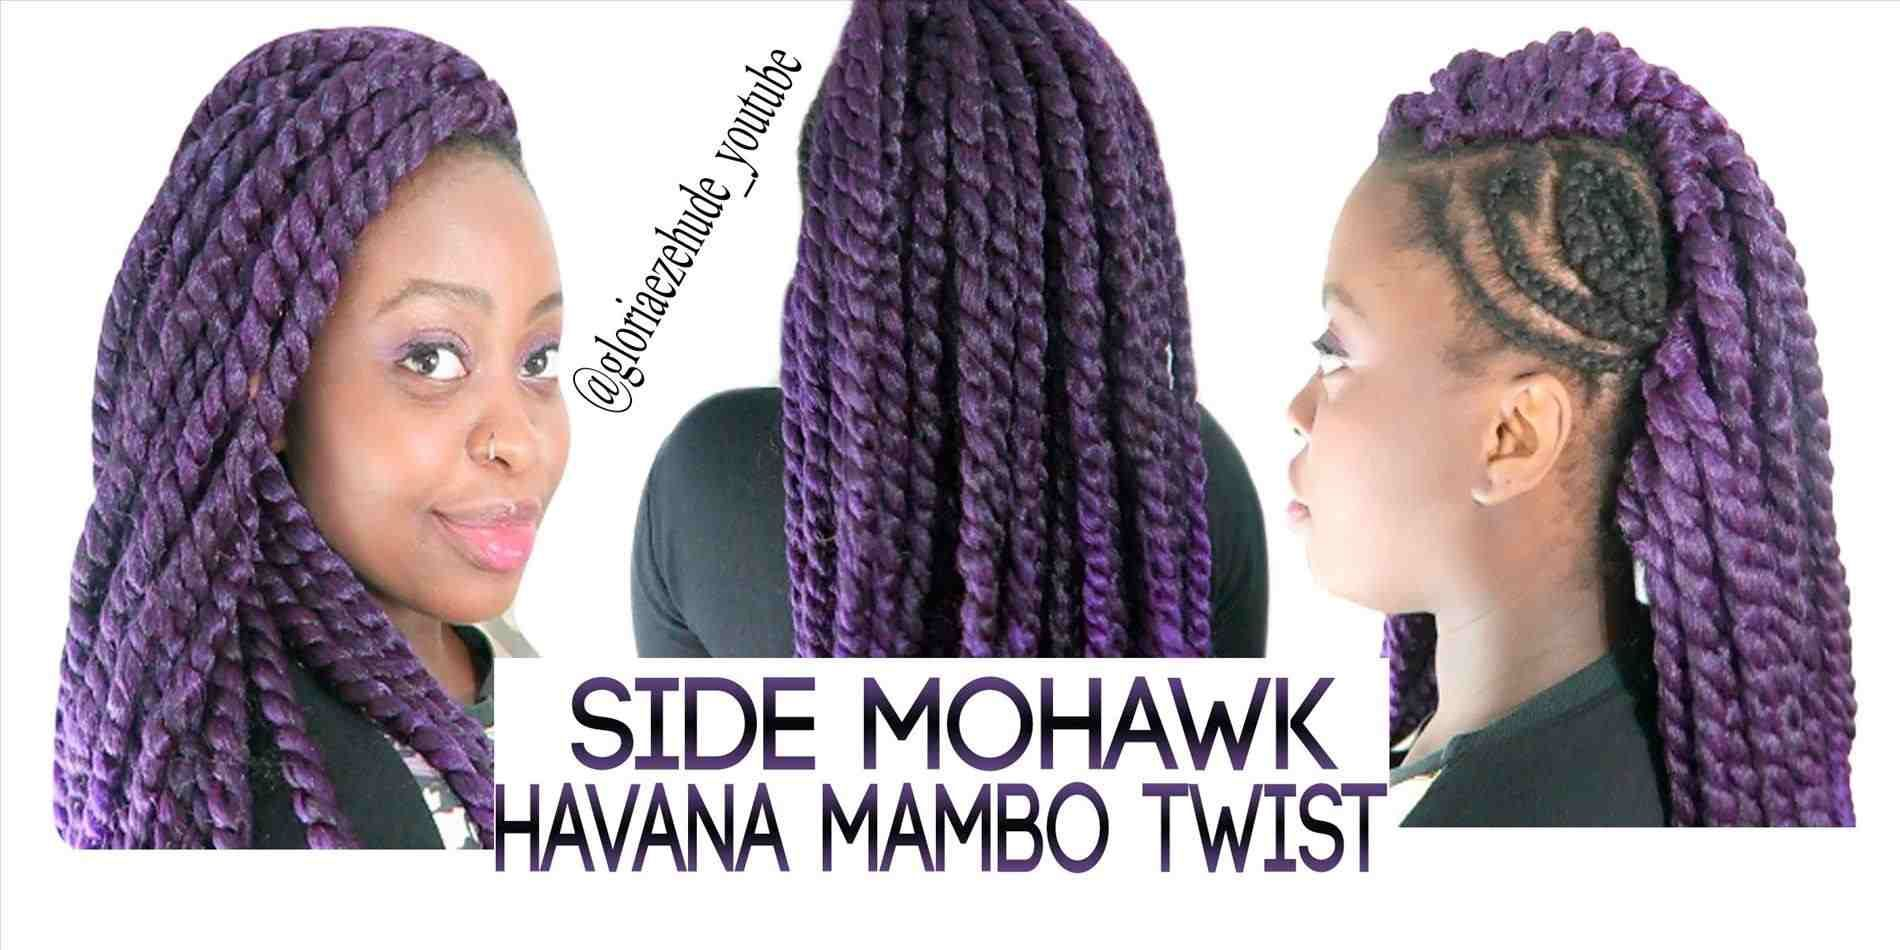 Crochet braids for kids twist kids micro braids length way